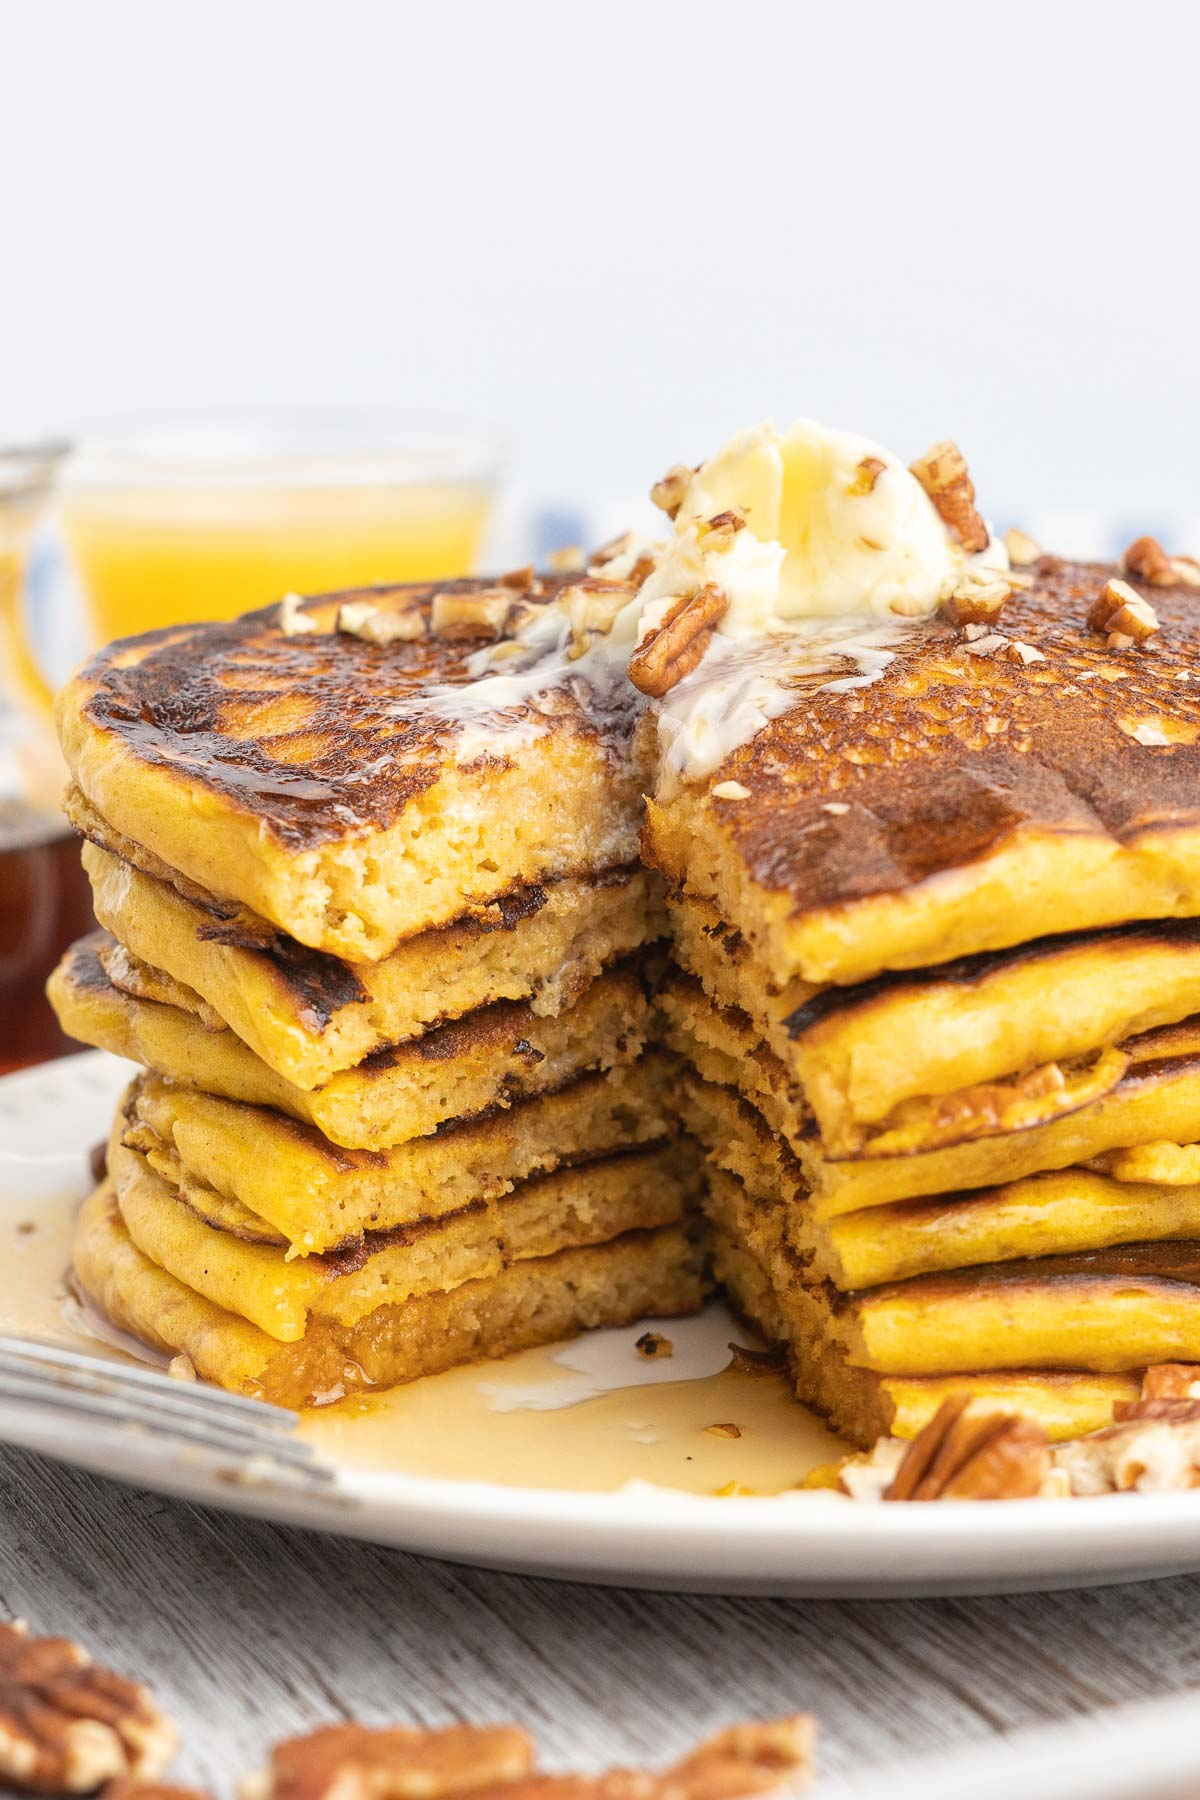 Stack of pancakes with wedge cut out topped with butter and syrup.